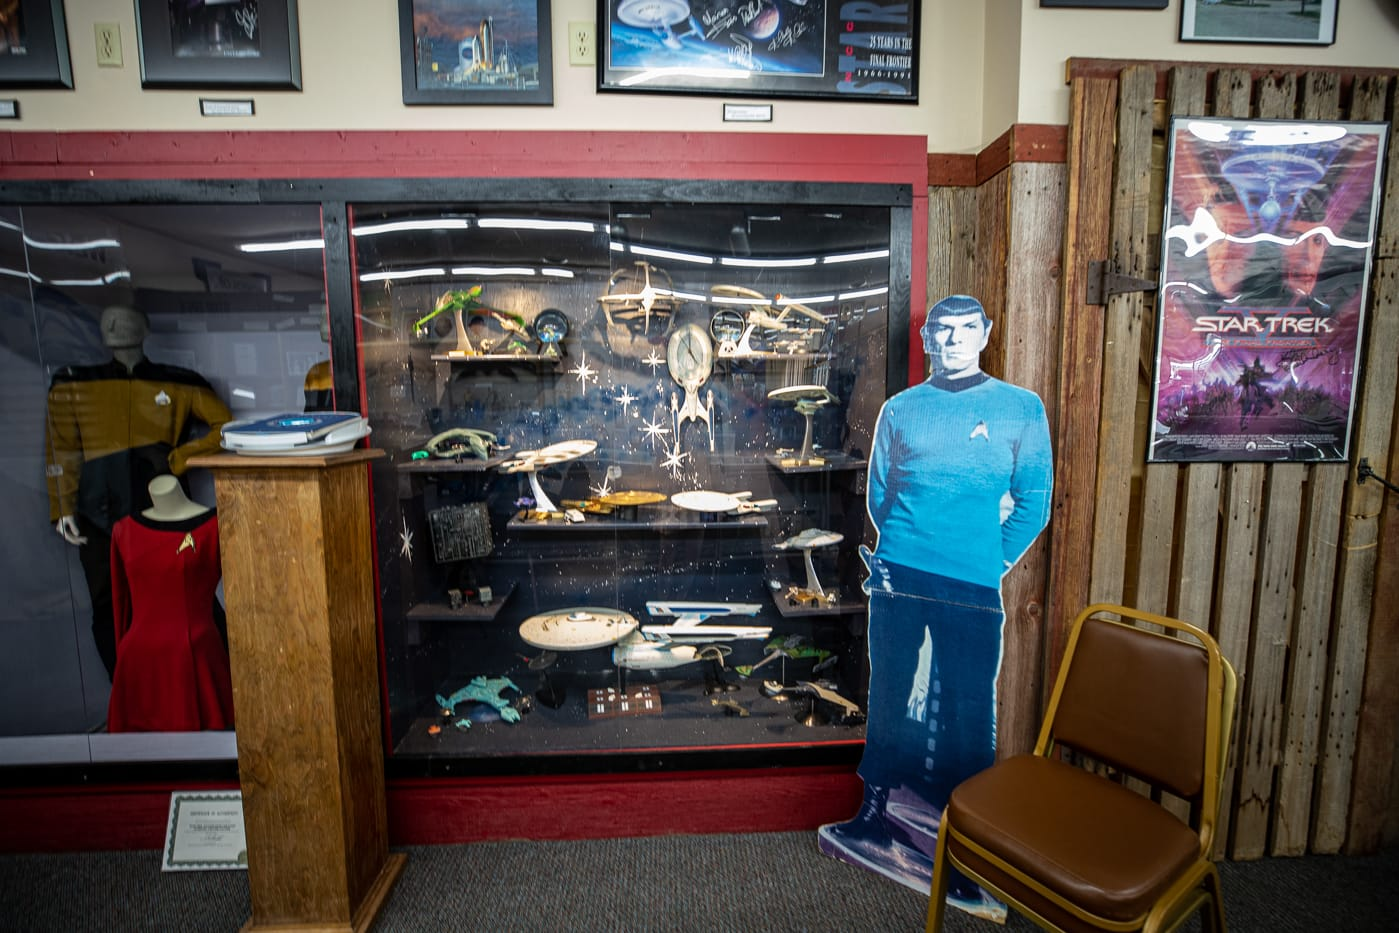 Models of the USS Enterprise at the Voyage Home History Center in Riverside Iowa. A Star Trek Museum in the future birthplace of Captain James T. Kirk of Star Trek fame.